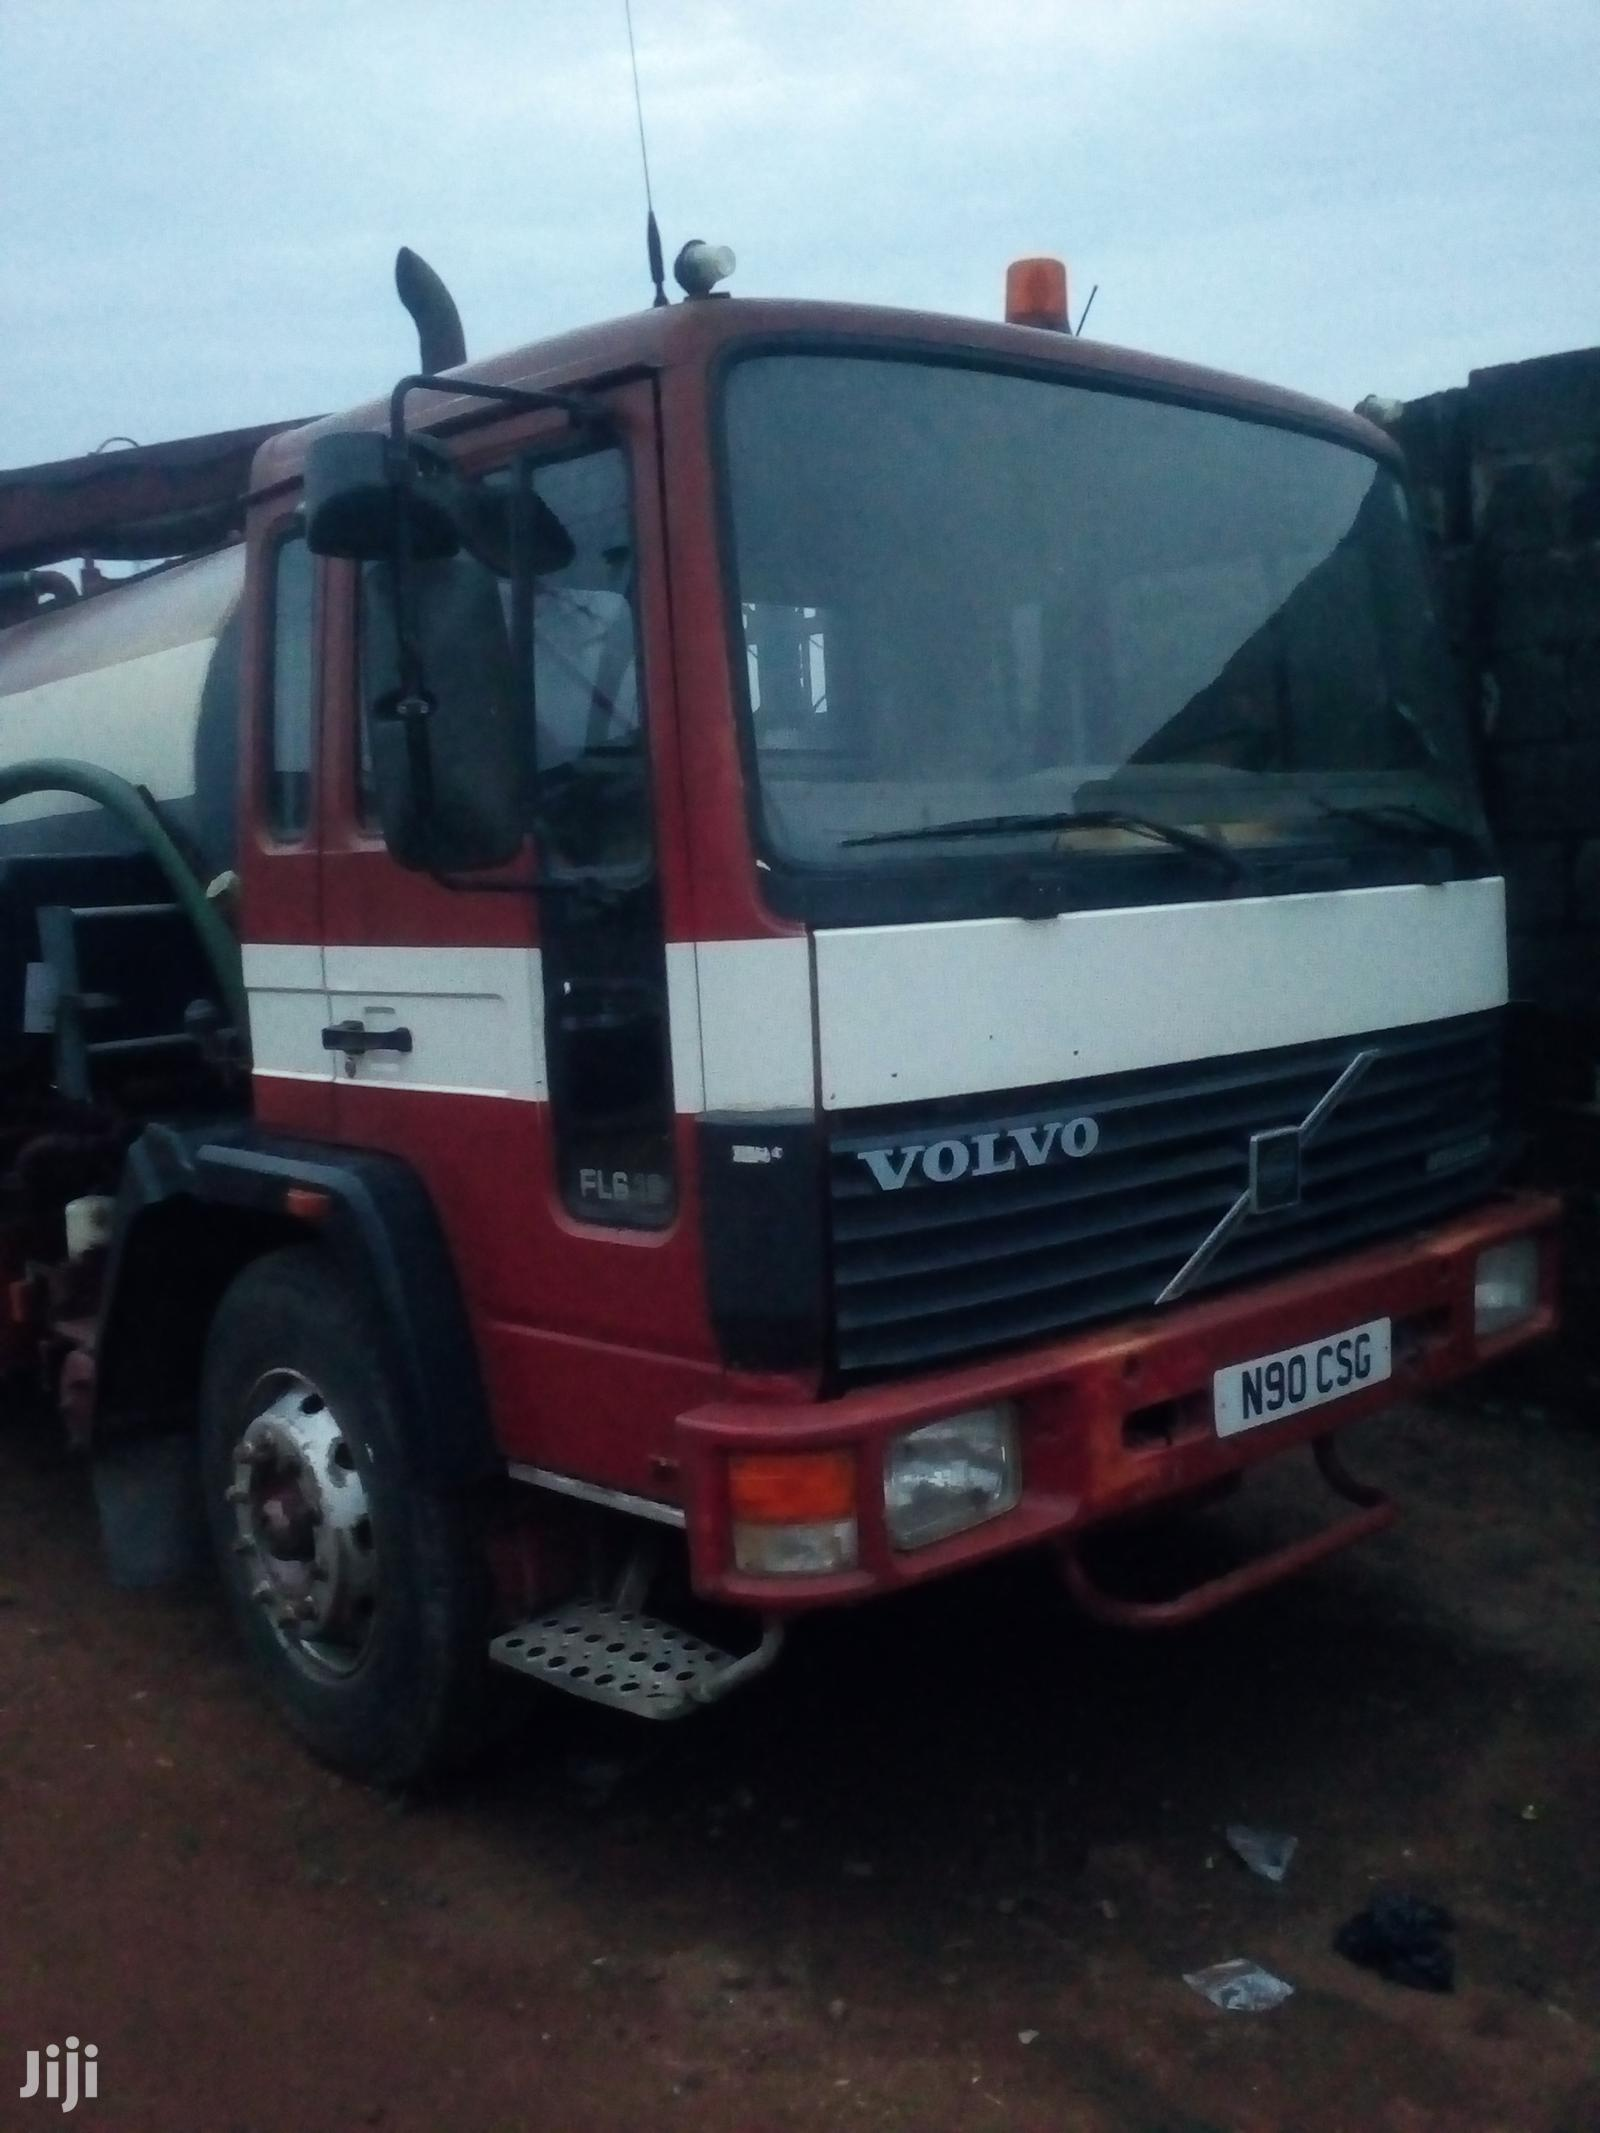 Septic Waste Evacuation Services (Soakaway Truck)   Cleaning Services for sale in Ajah, Lagos State, Nigeria